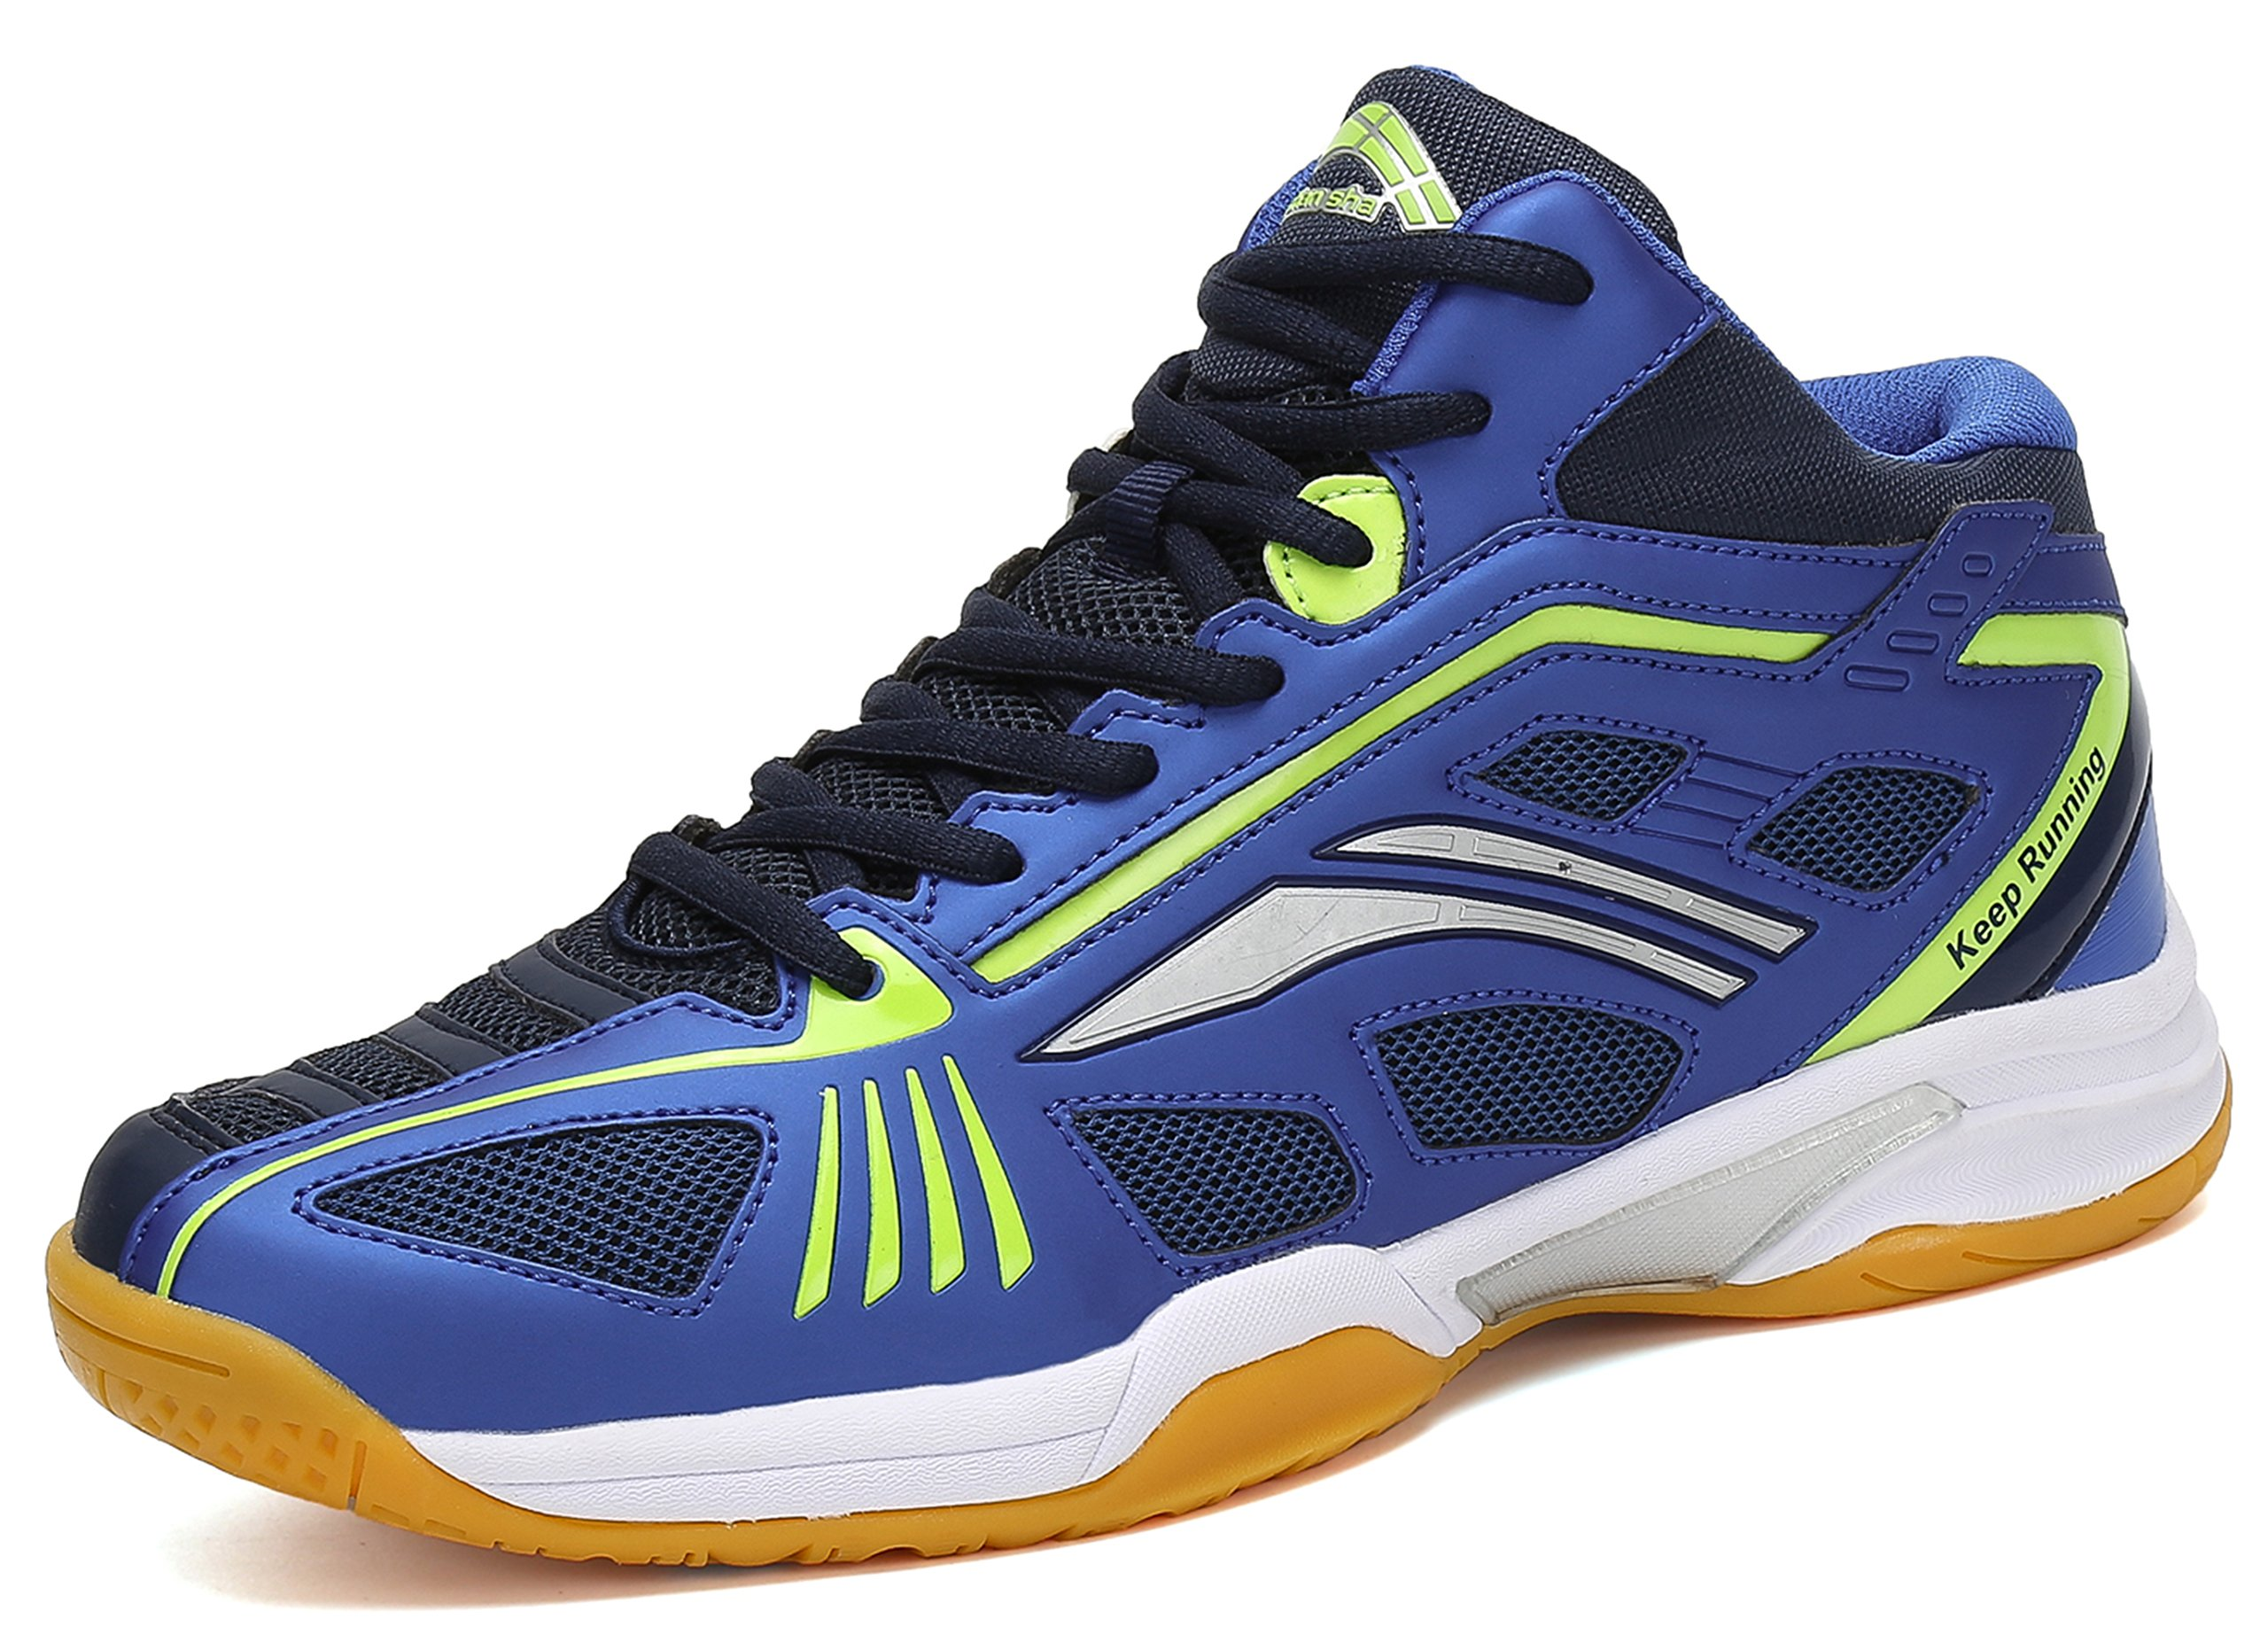 Fashiontown Badminton Shoes Men Non Slip Indoor Court Sneakers Wide Safety Training Shoe